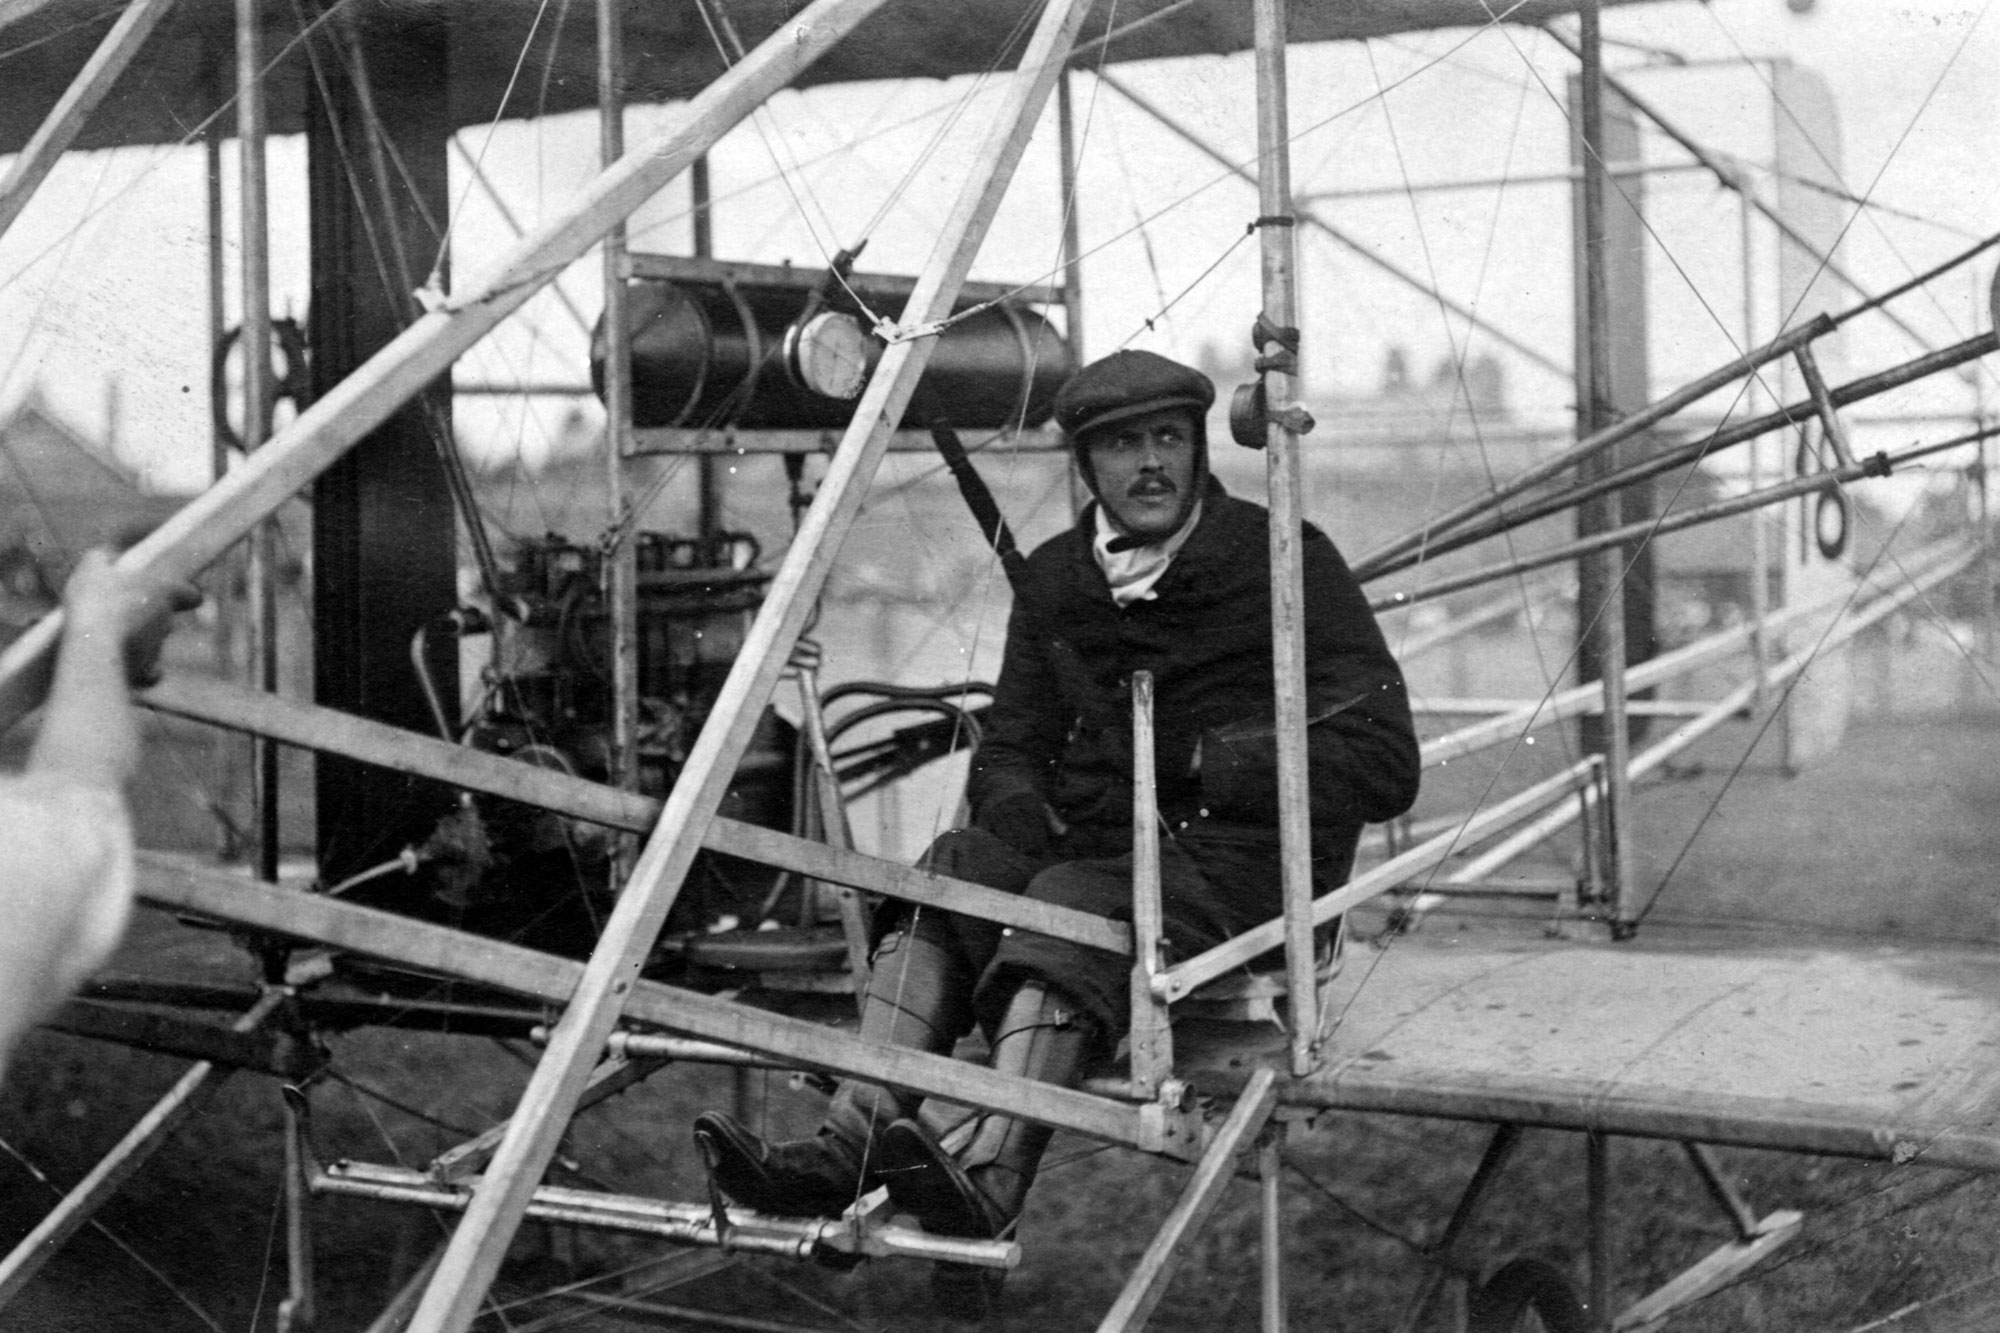 Charles Rolls in aircraft